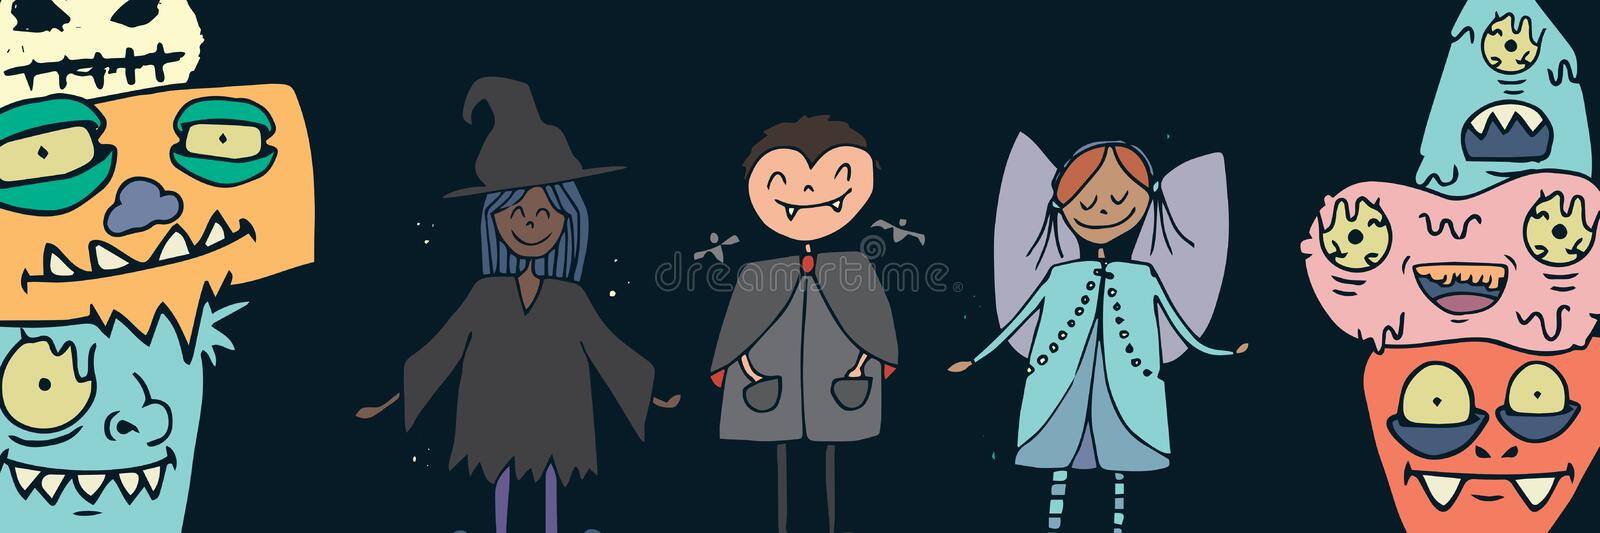 Illustrations d'enfants et de monstres de costume de Halloween illustration libre de droits